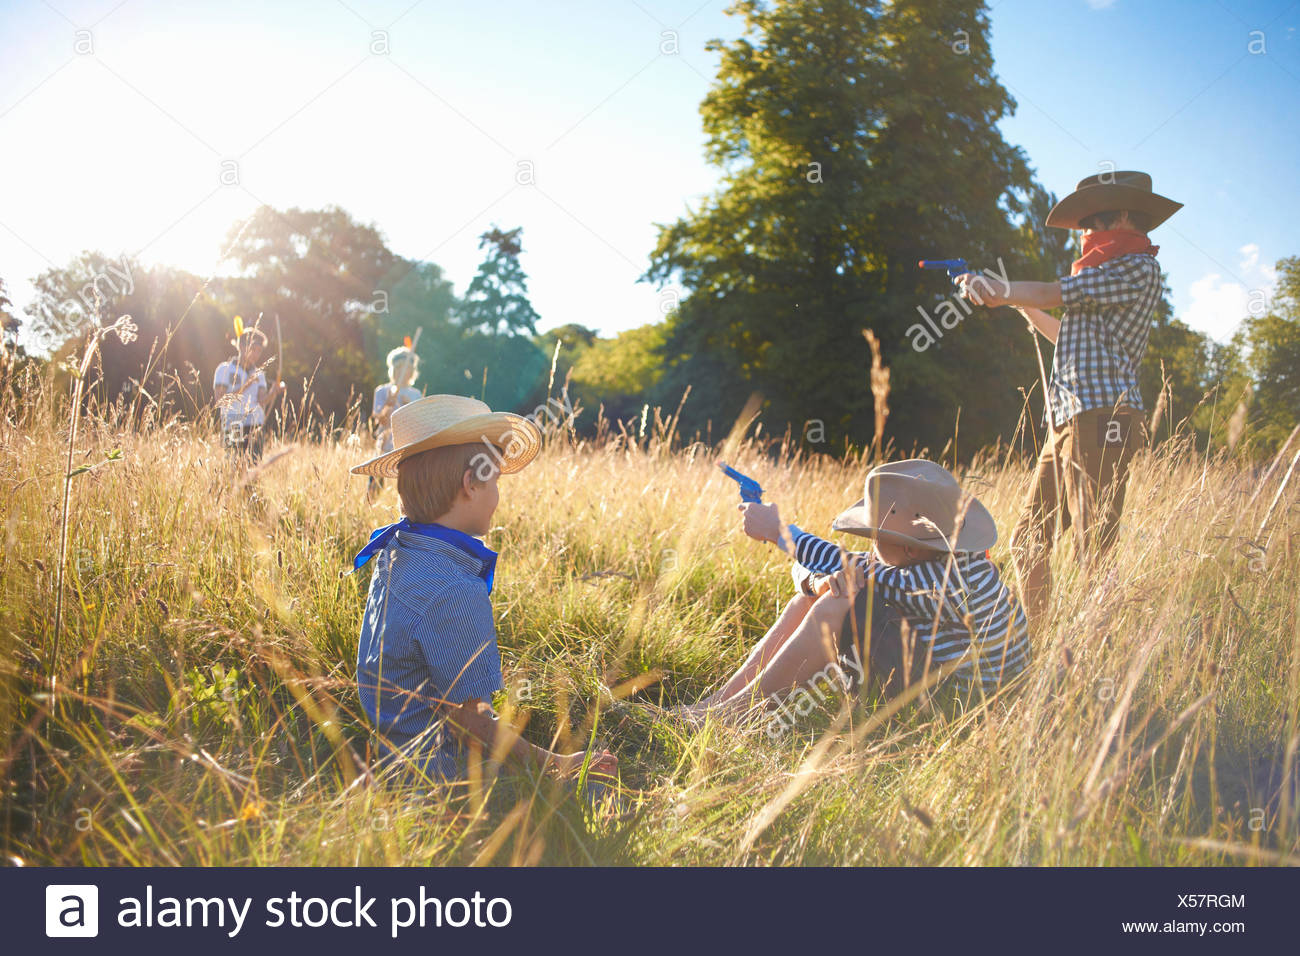 Group of young boys playing in a field - Stock Image